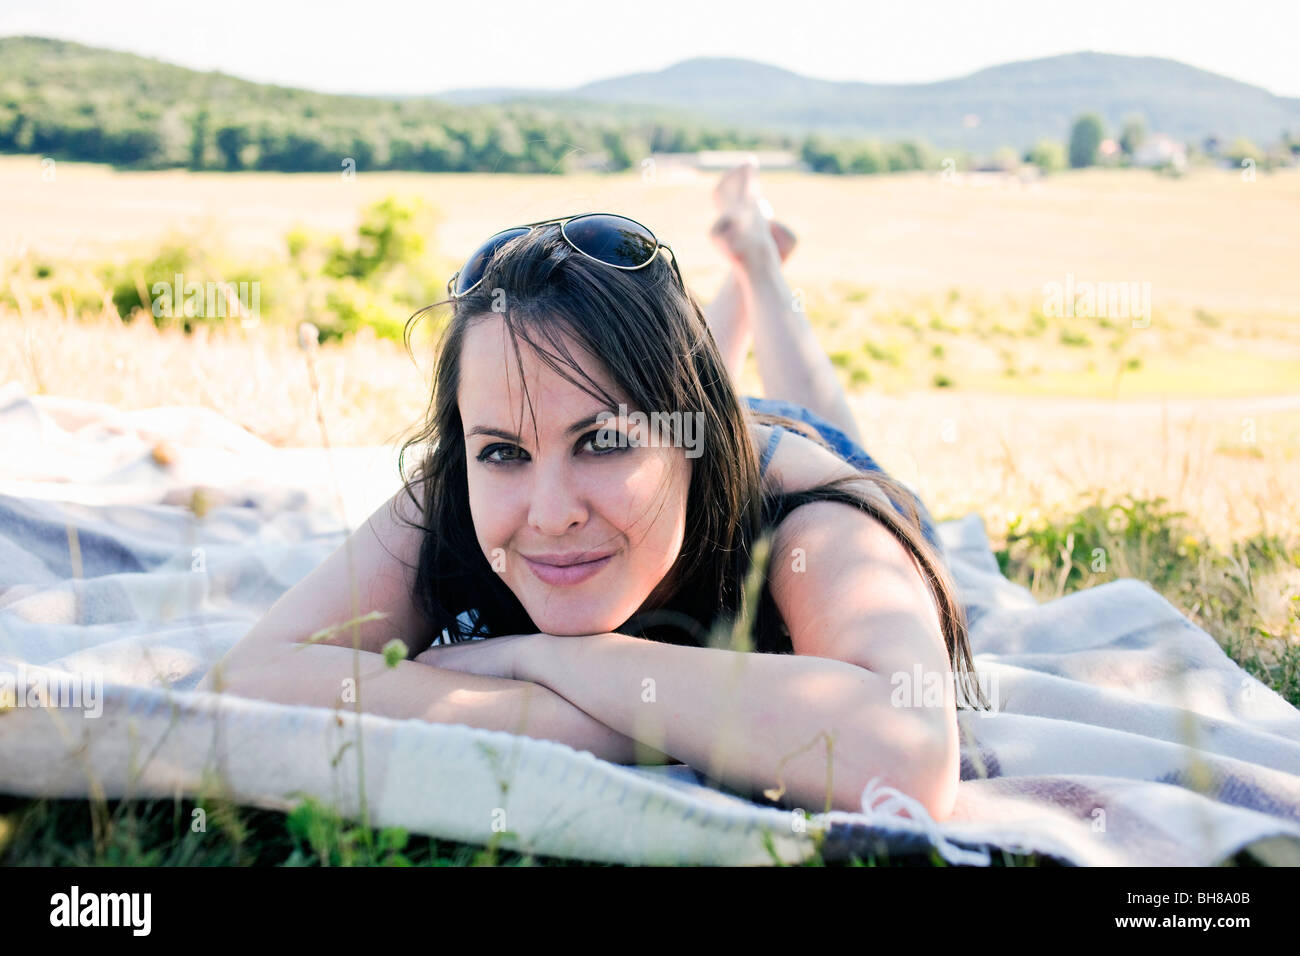 Woman relaxing in shade - Stock Image